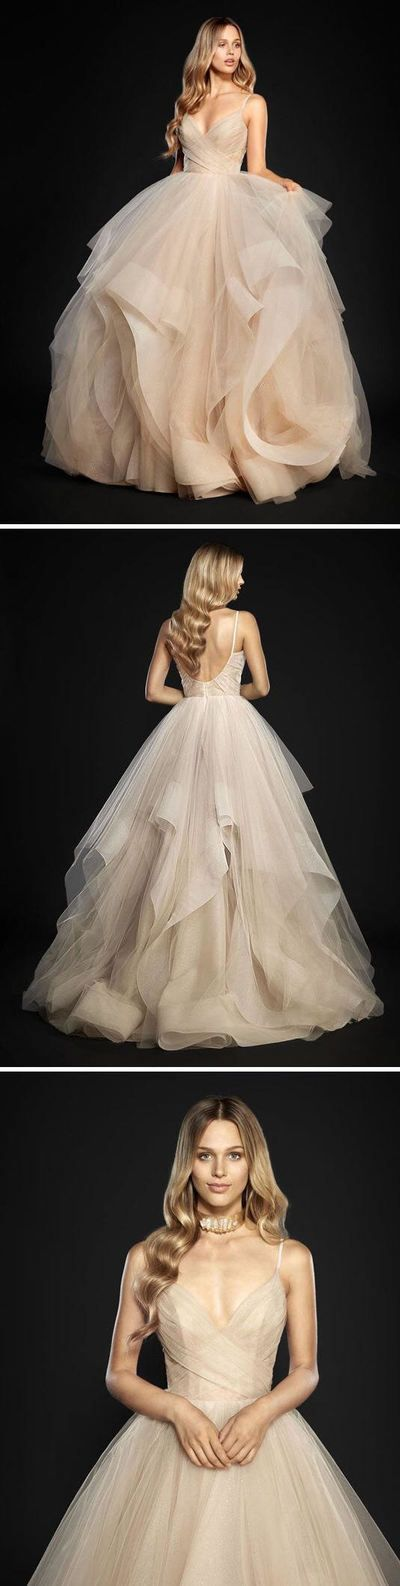 611 best Wedding dresses images on Pinterest | Short wedding gowns ...